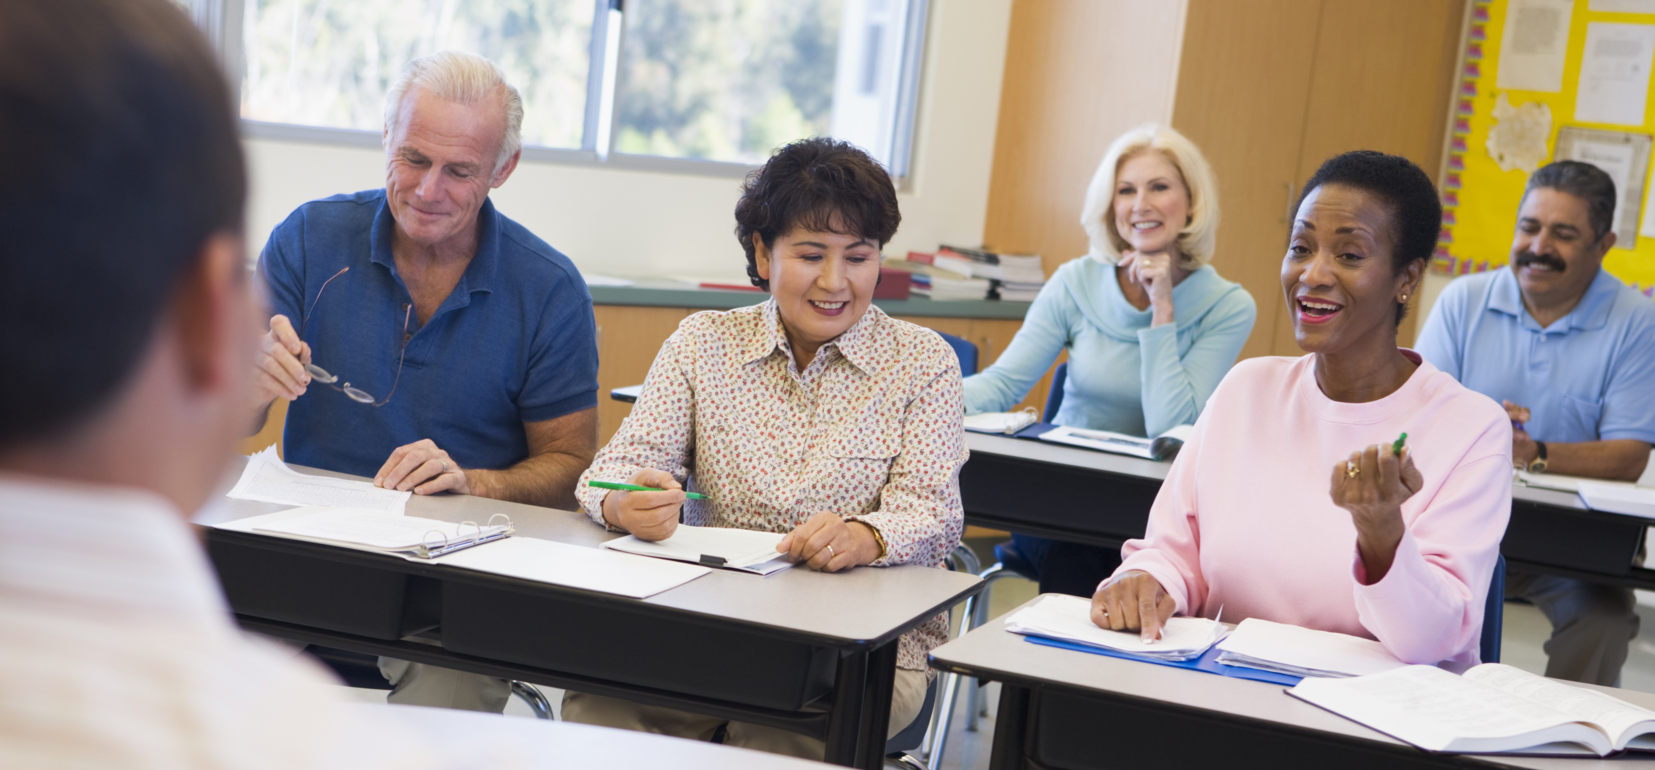 Adult accelerated education